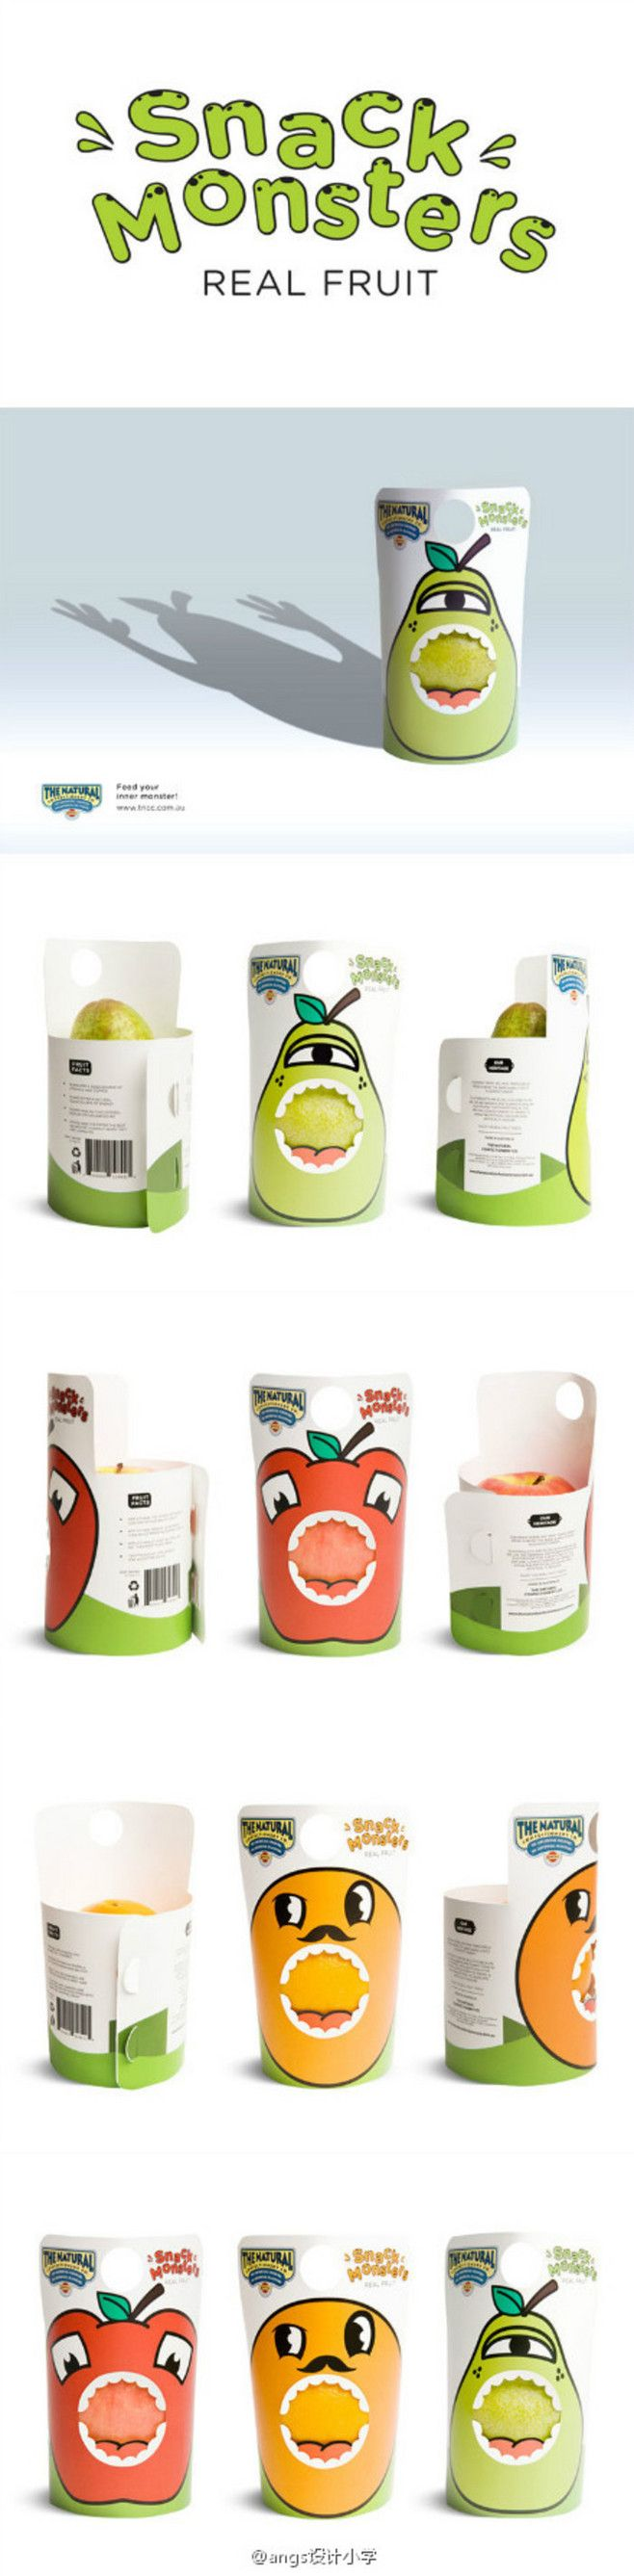 """Instant monster"" Fruit independent packaging design -Angus ..."